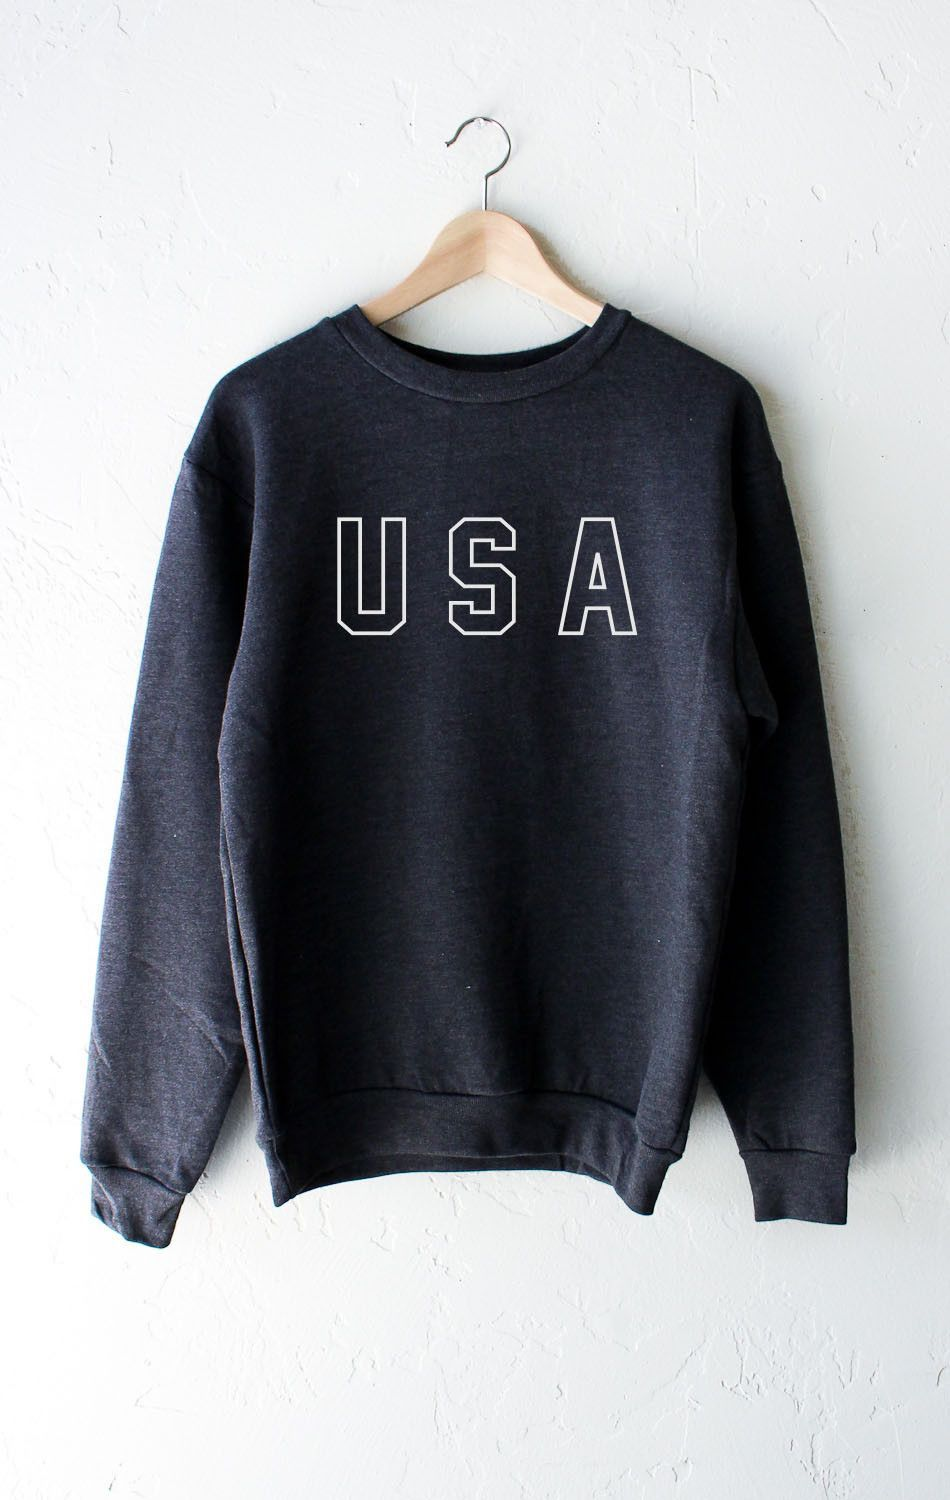 33665749dc78 Description Details  Get cozy in our soft oversized dark heather grey  sweater with print  USA . Unisex